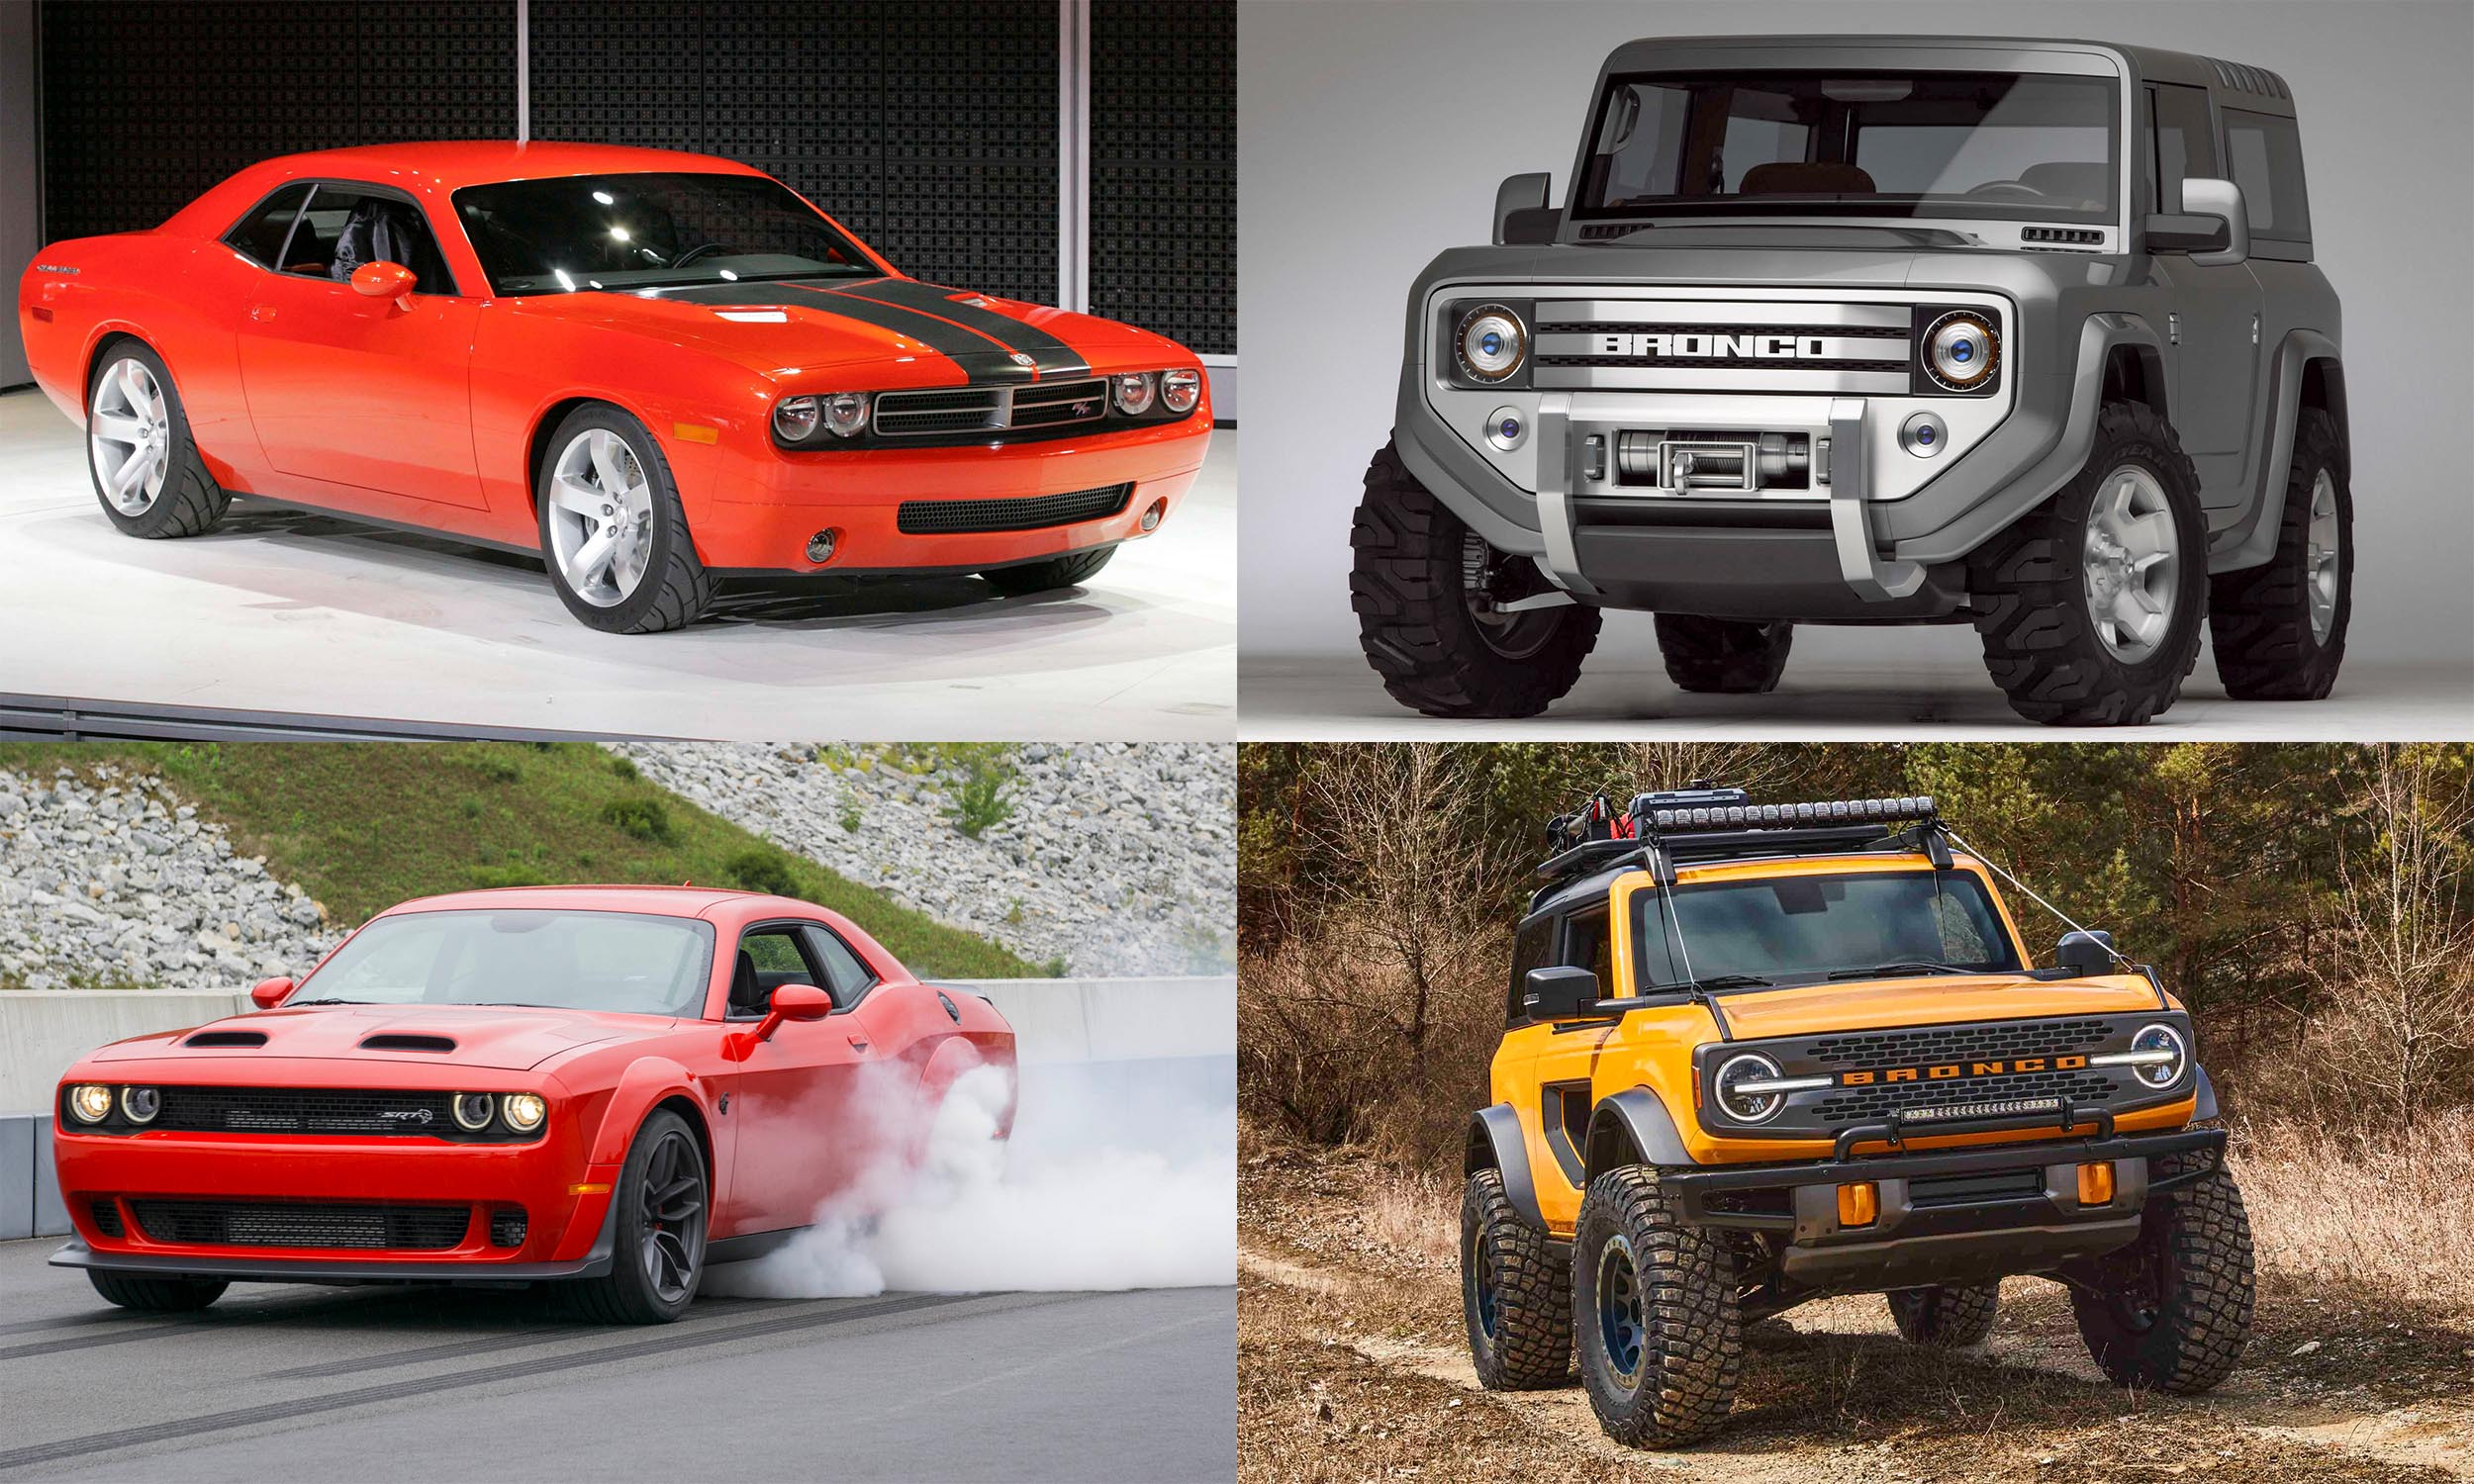 Stunning Concept Cars That Went From Fantasy to Reality